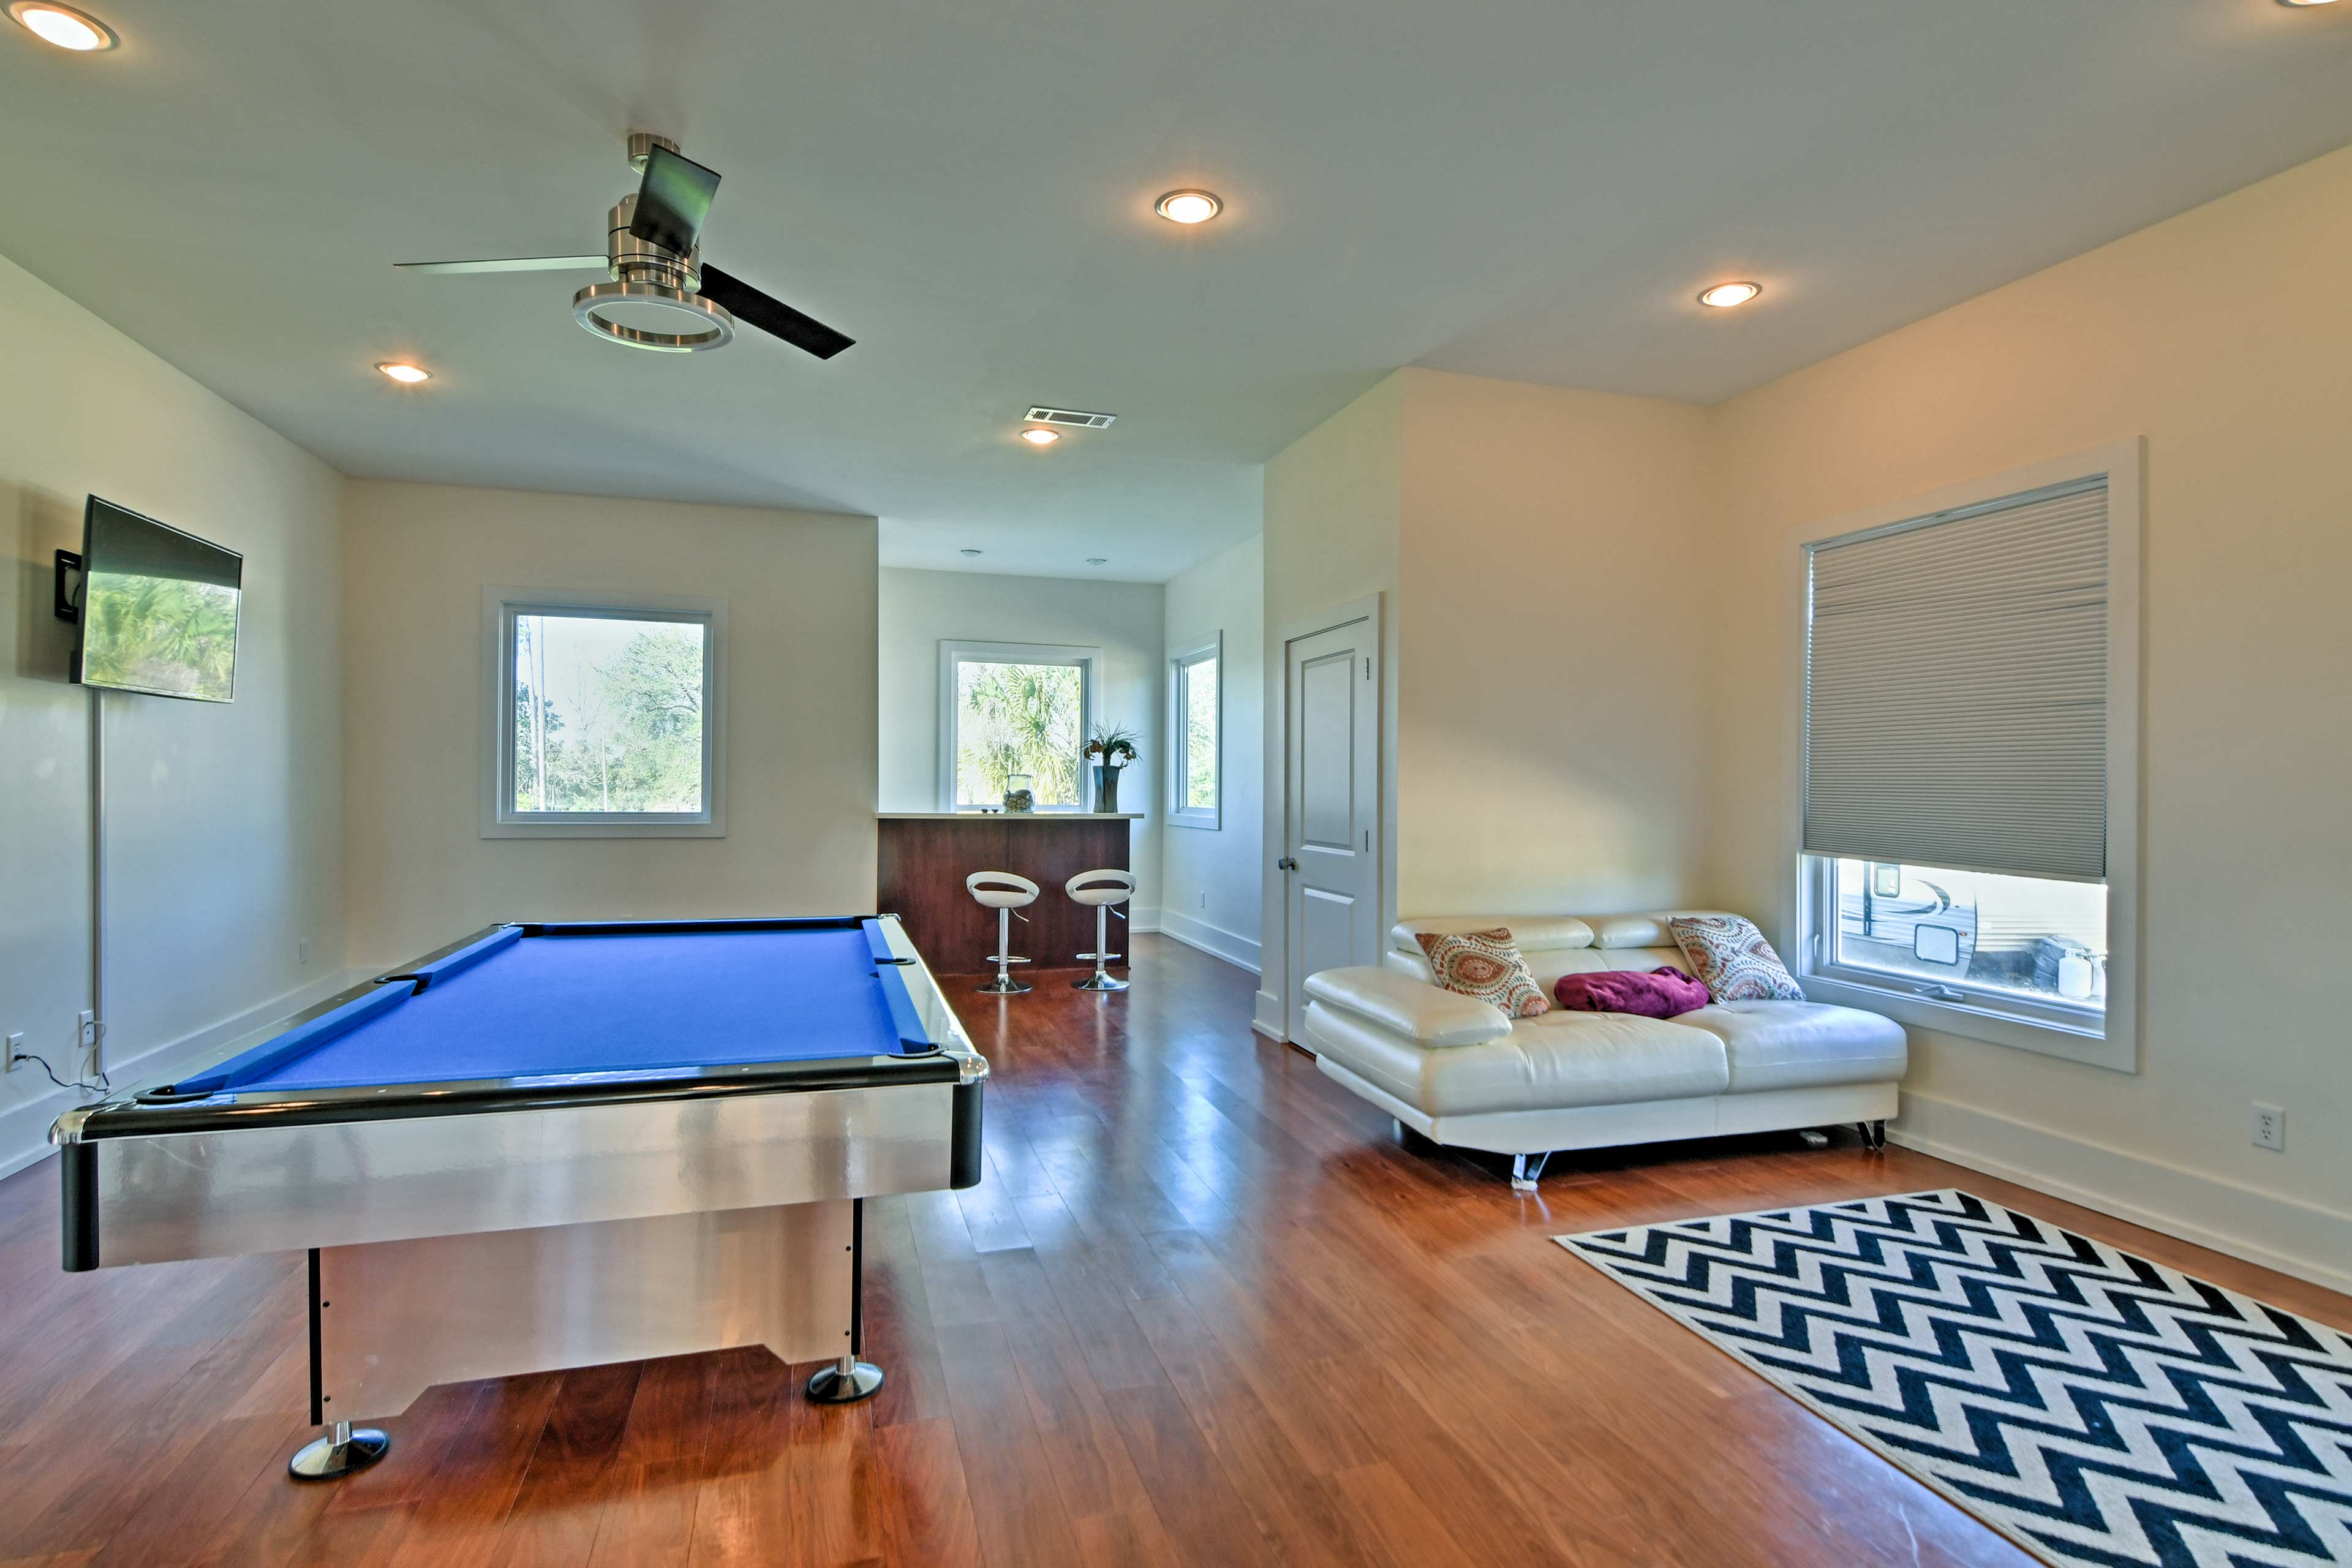 The game room provides a bar and pool table.